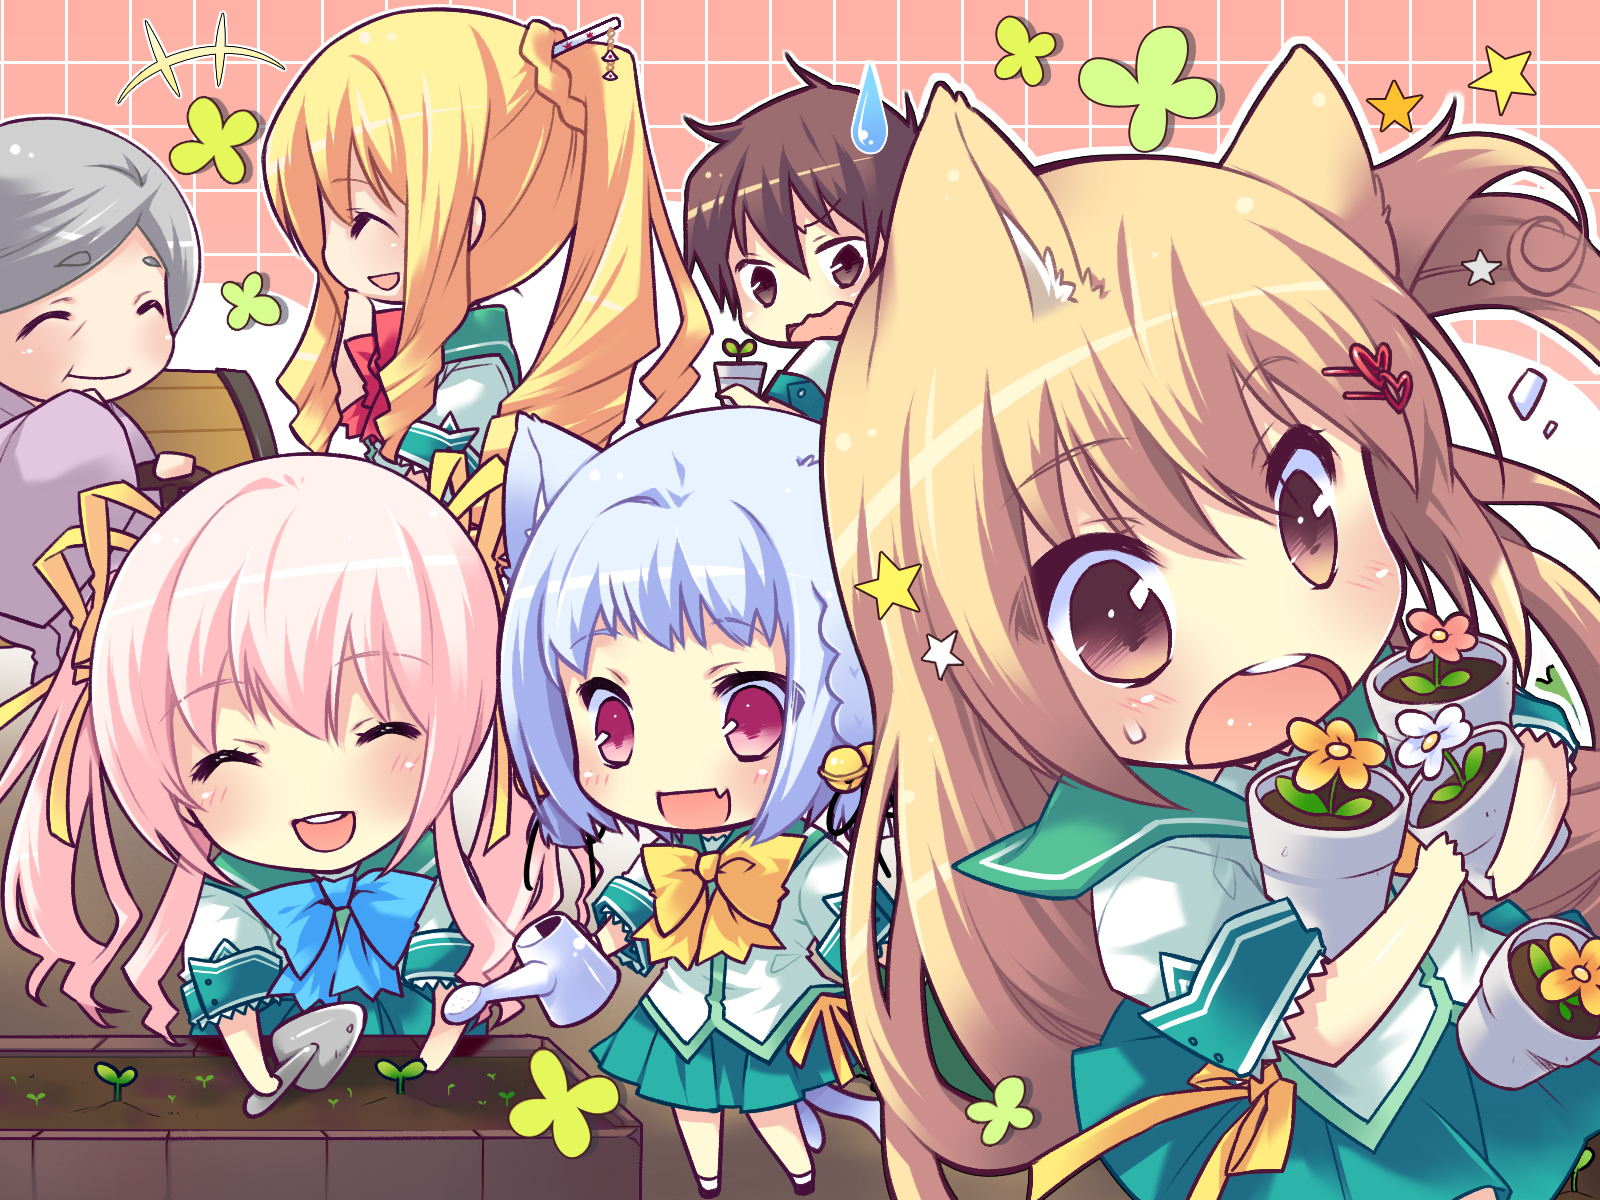 download chibi anime wallpaper which is under the anime wallpapers 1600x1200